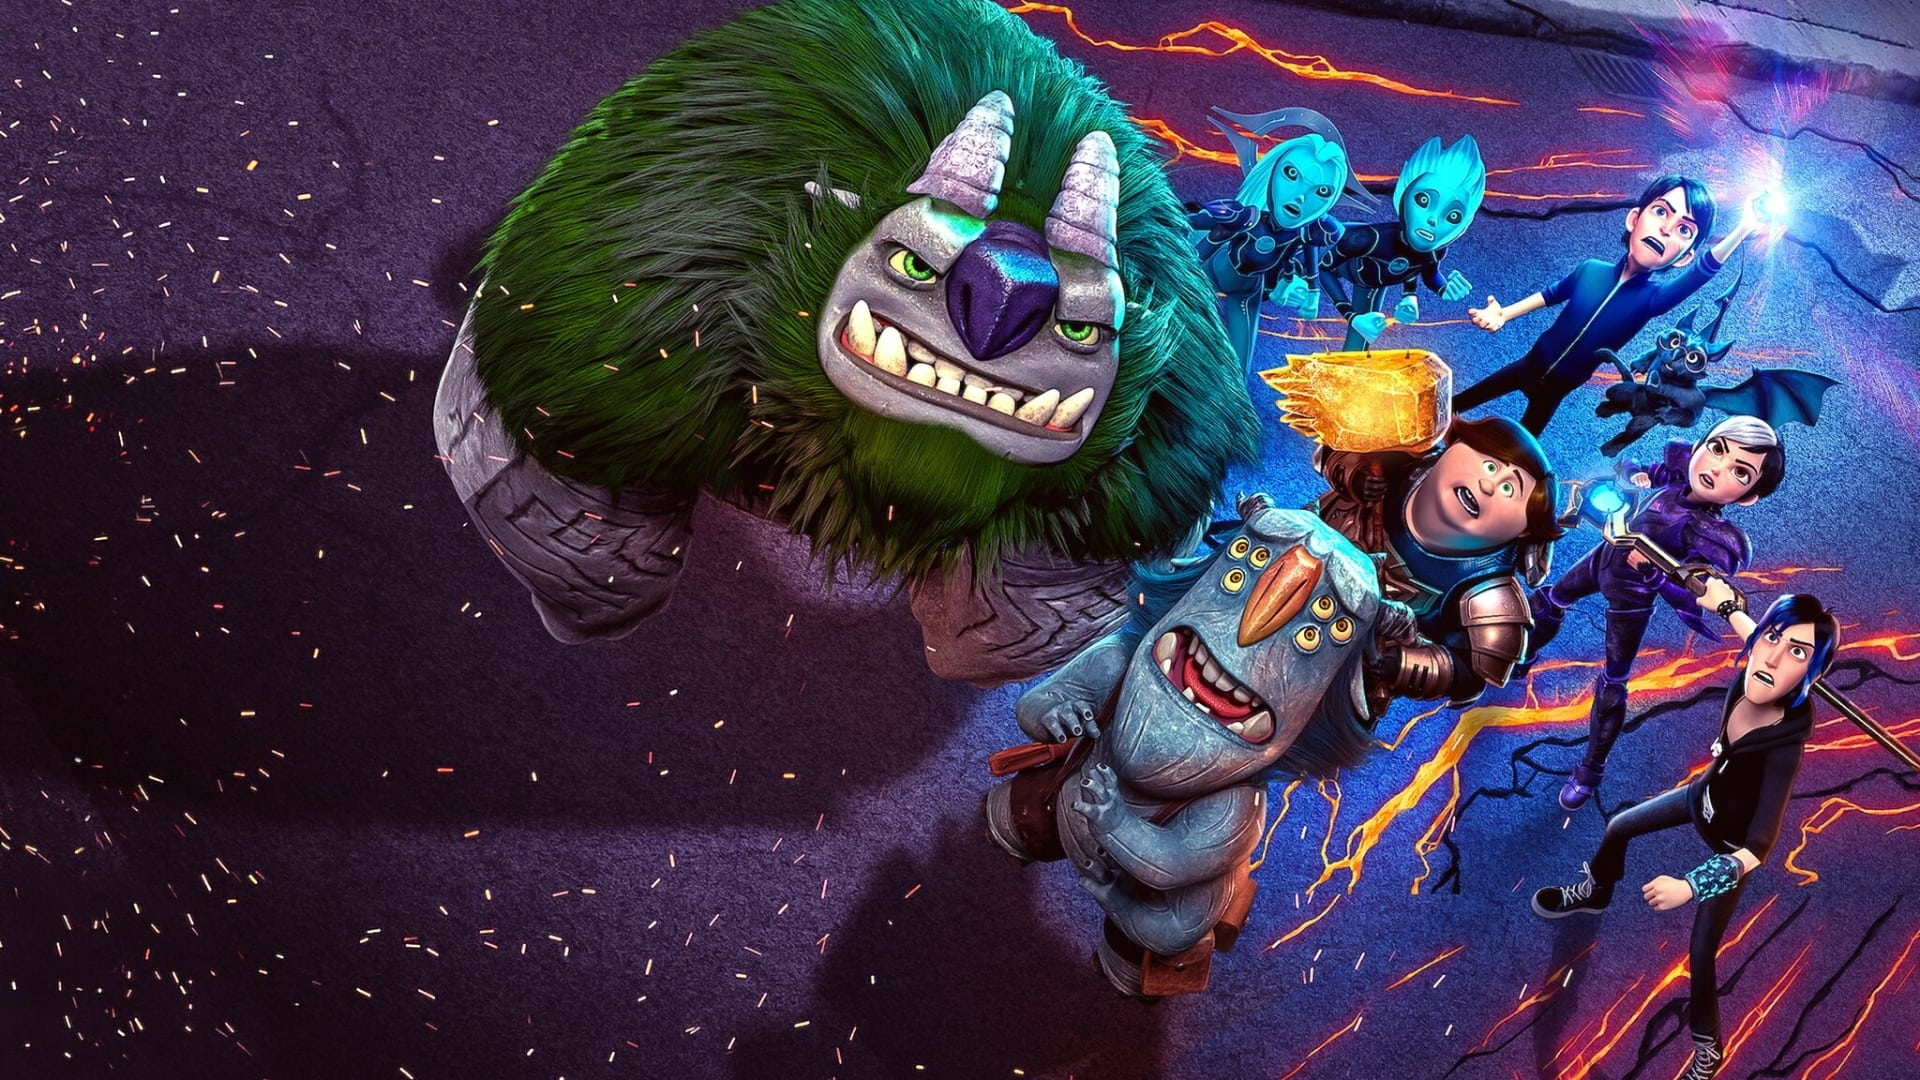 Trollhunters: Rise of the Titans (2021) Movie Streaming